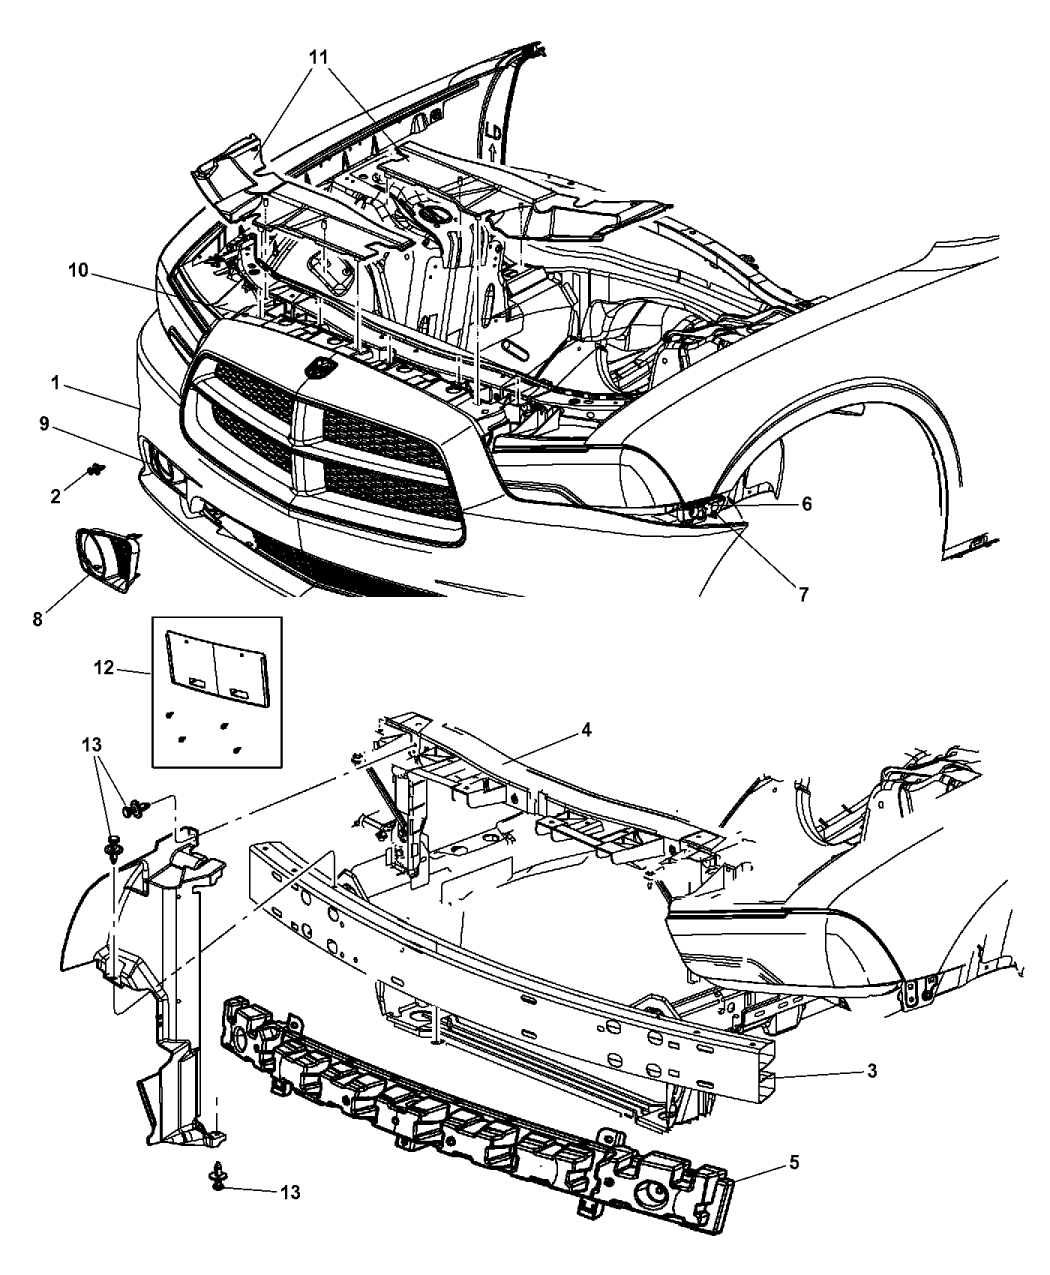 a bumper for dodge charger diagram